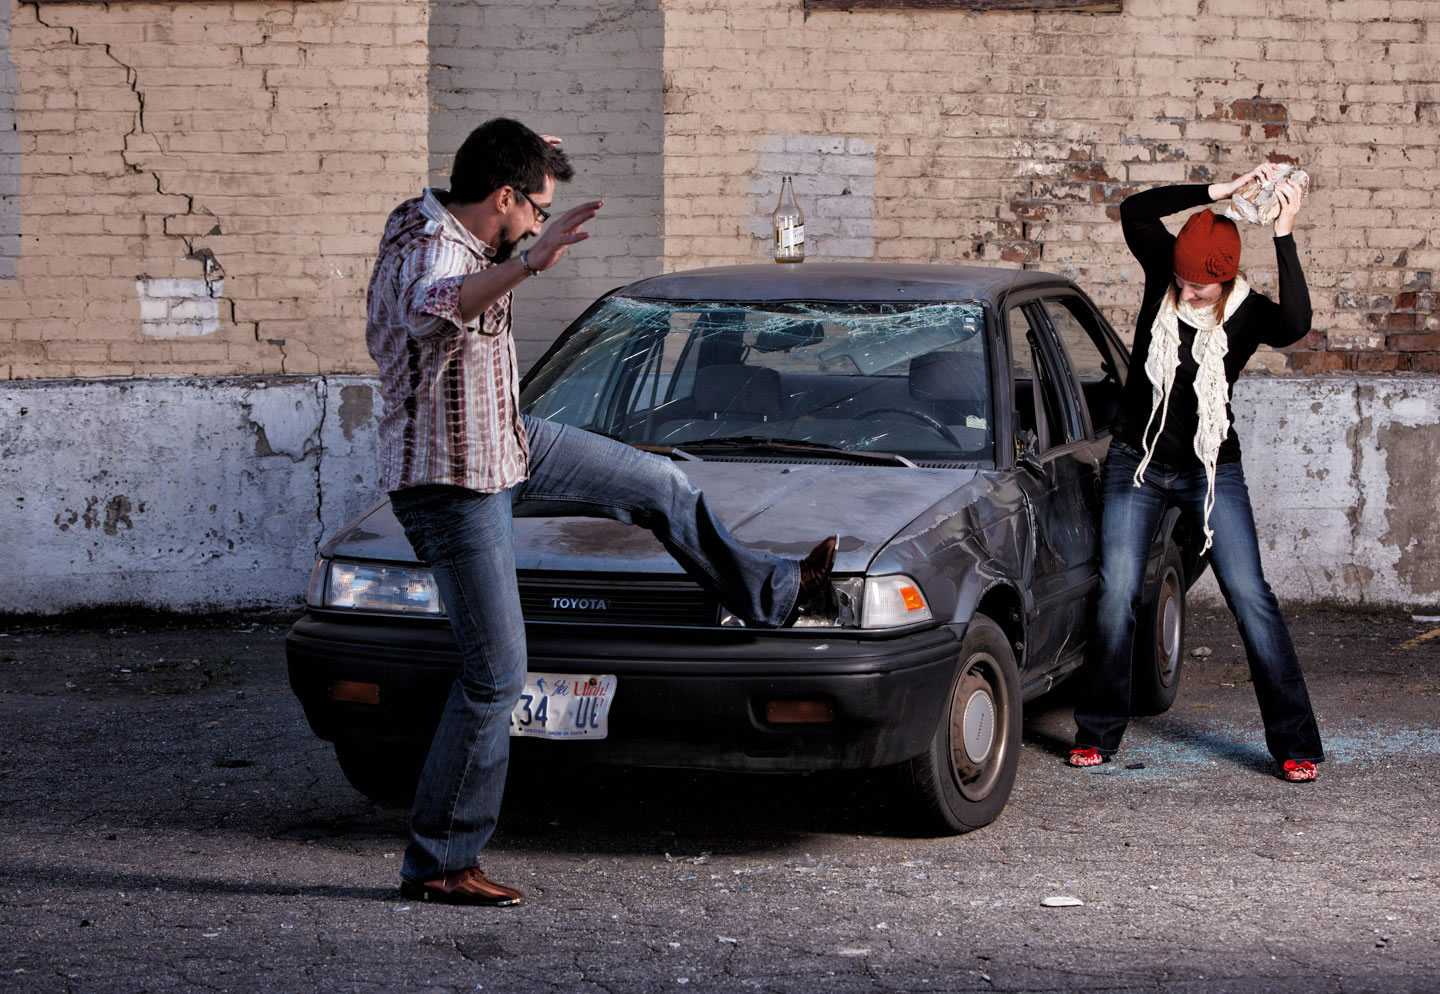 Anne and Aaron destroy and abandoned car